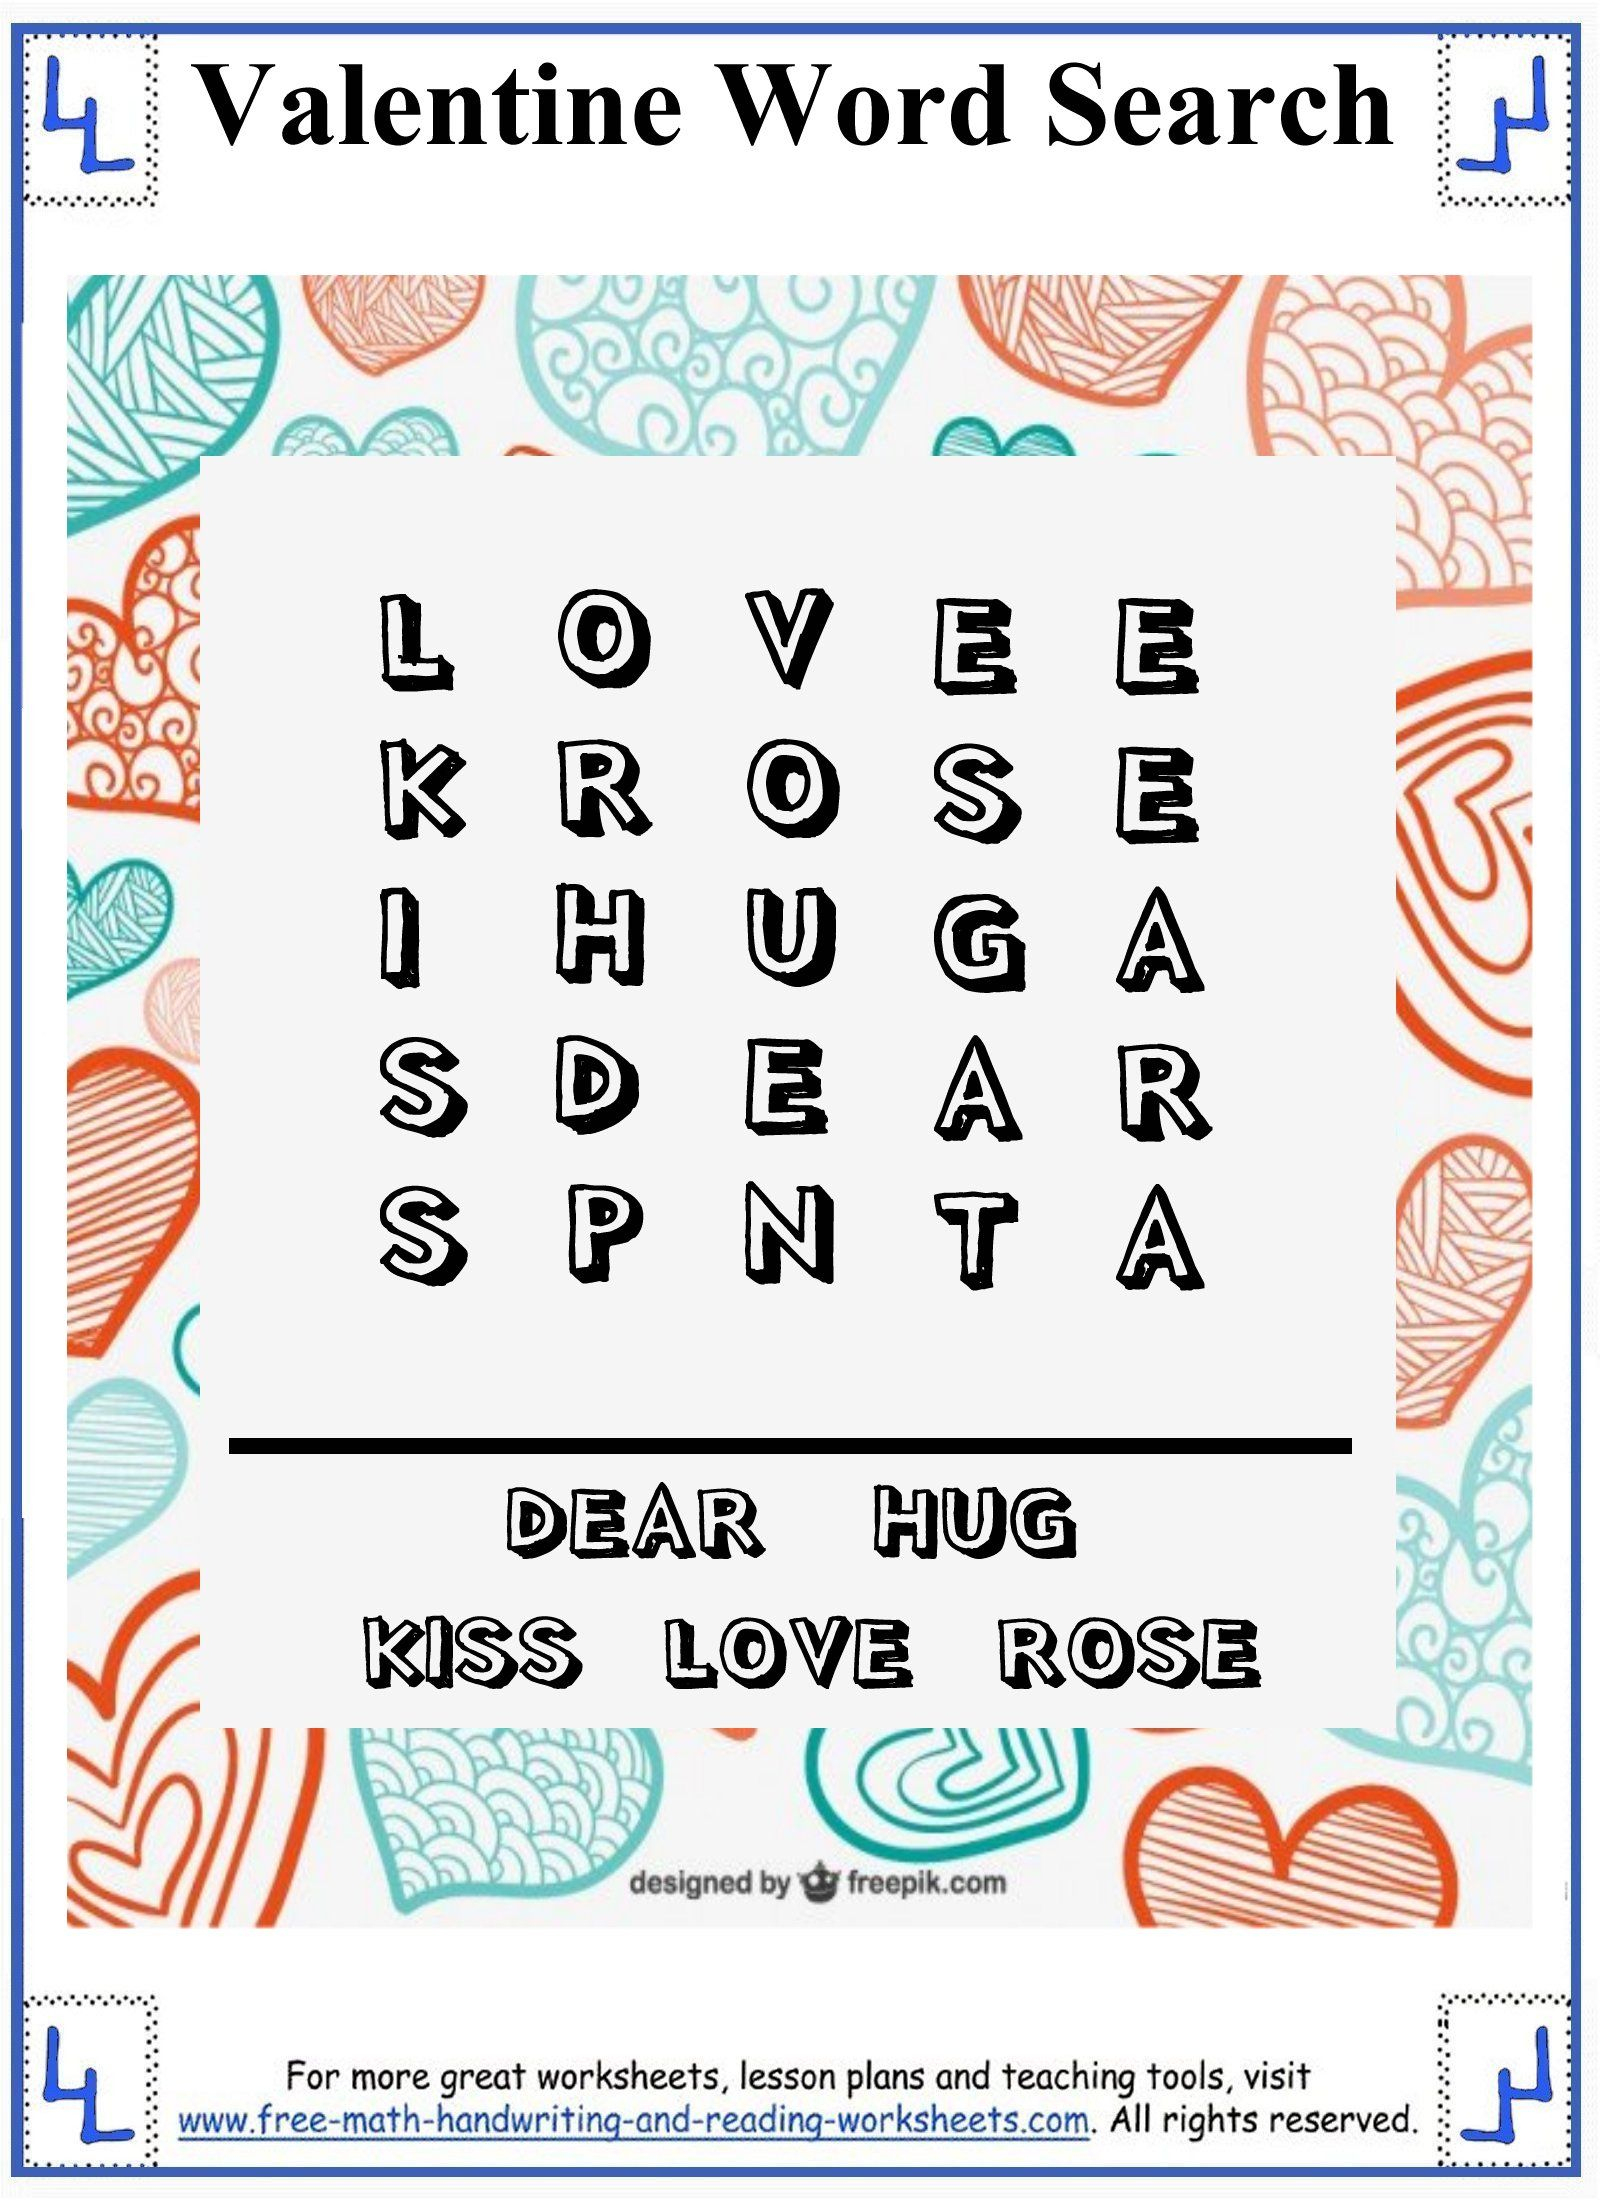 Valentine Word Search - Printable Puzzles - Easy 5X5 Grid For - Printable Puzzles For First Grade